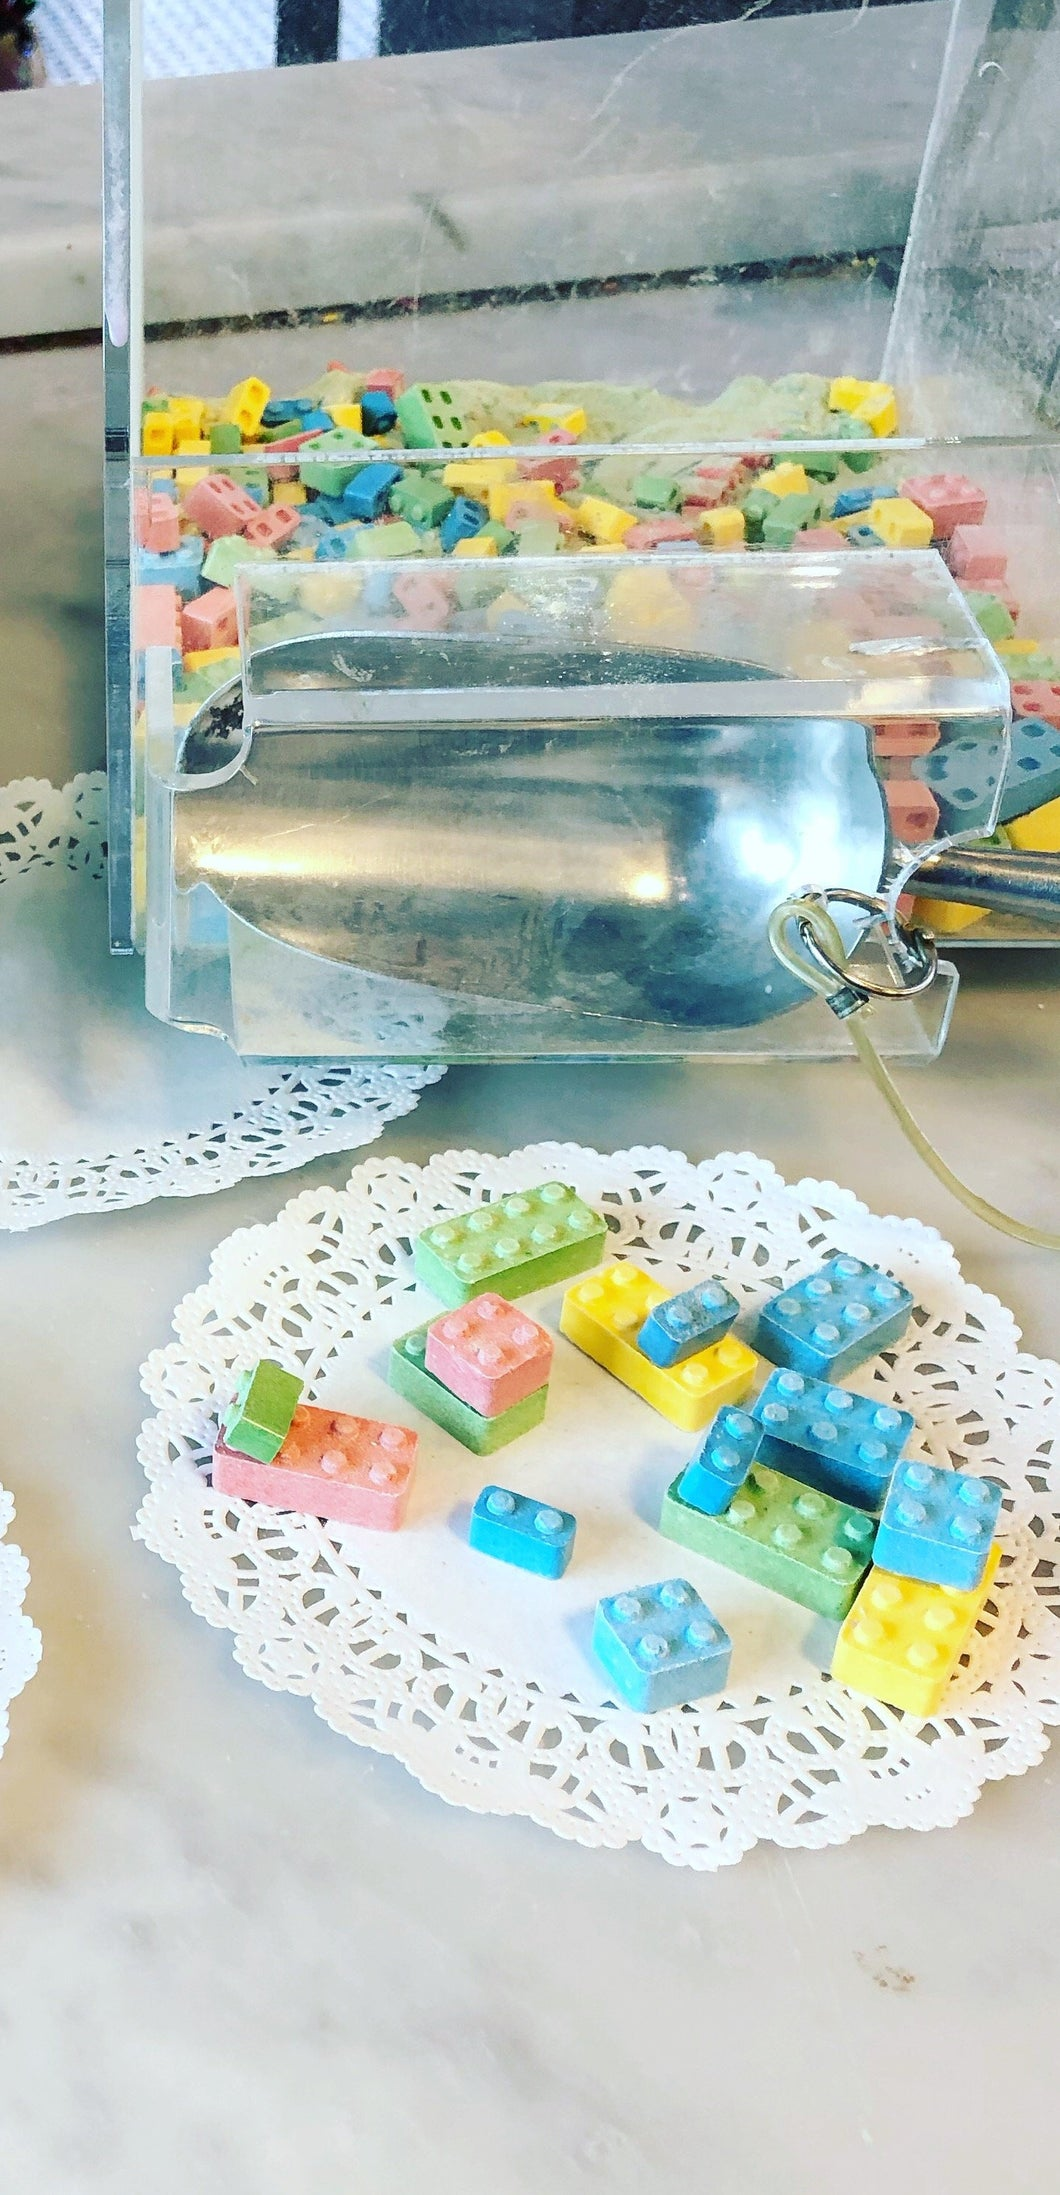 Hard Candy Building Blocks - Loose Candy Bag